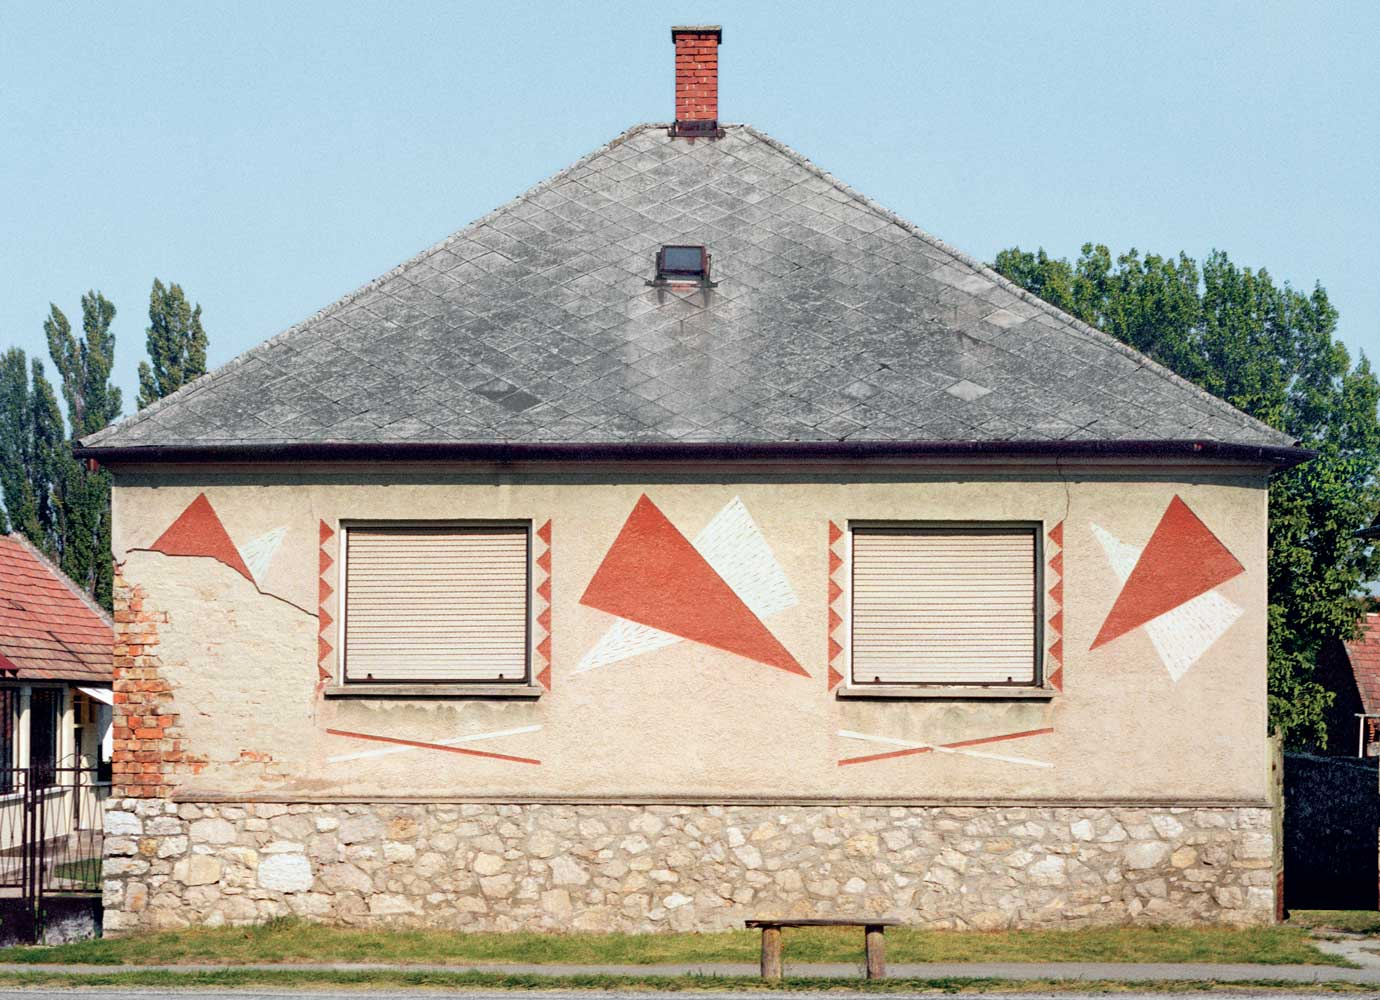 The Kádár cube comeback: how the humble Hungarian home inspired high-fashion and eco-friendly living